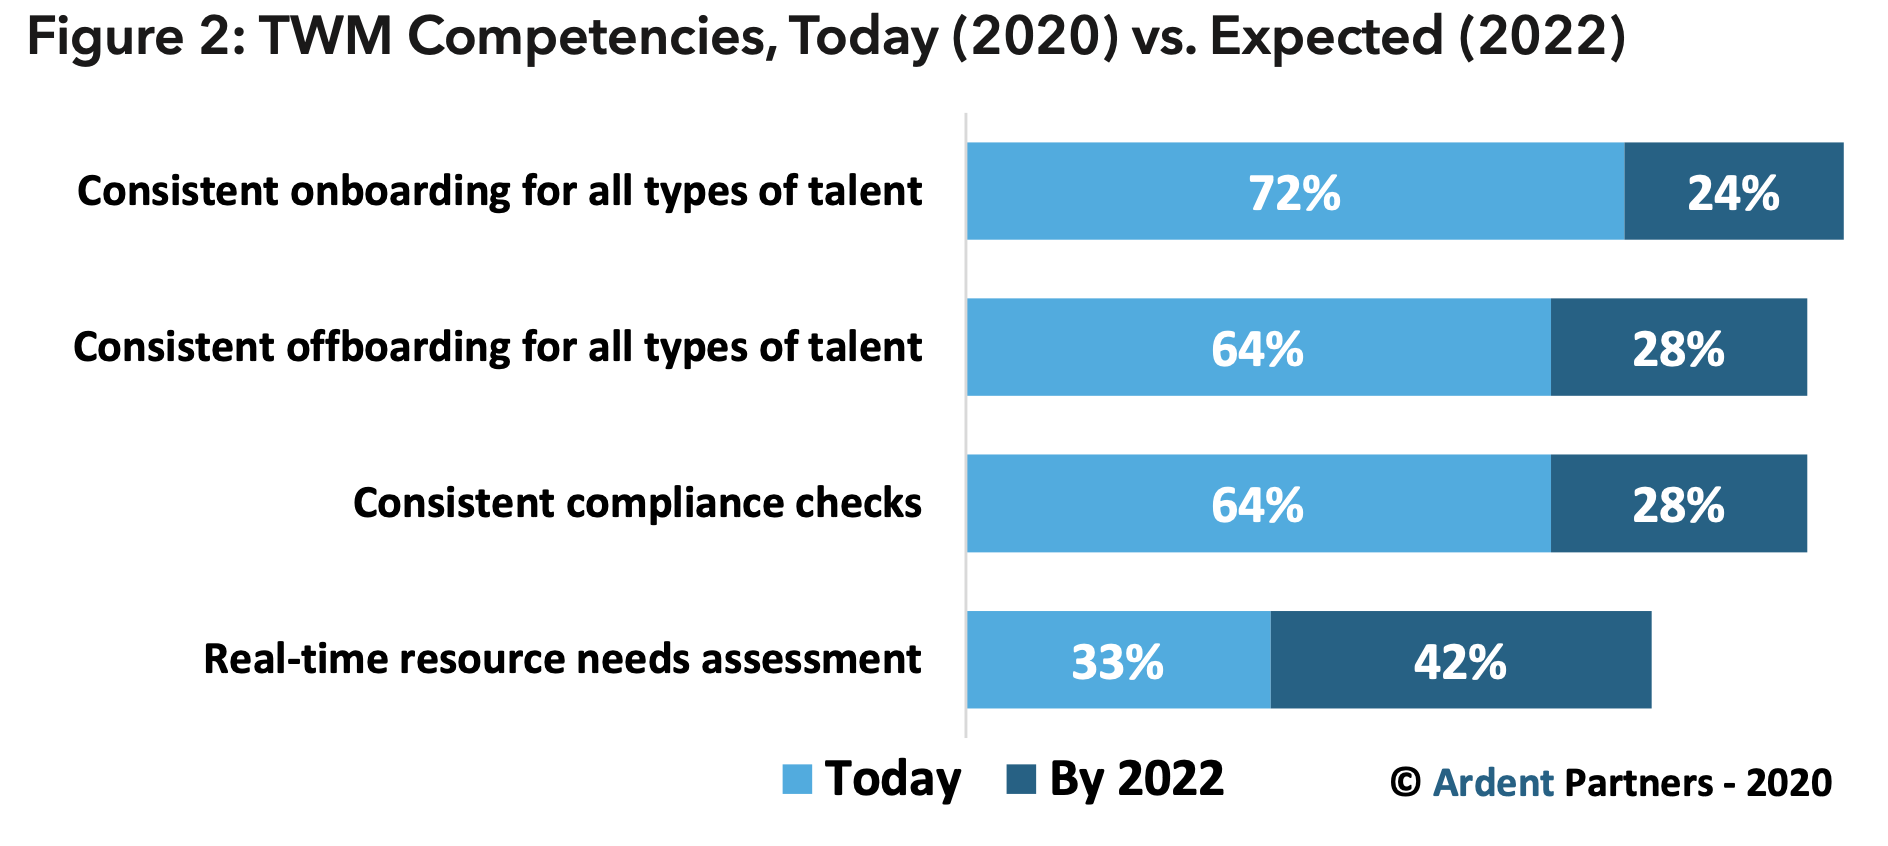 Figure 2 - Total Workforce Competencies